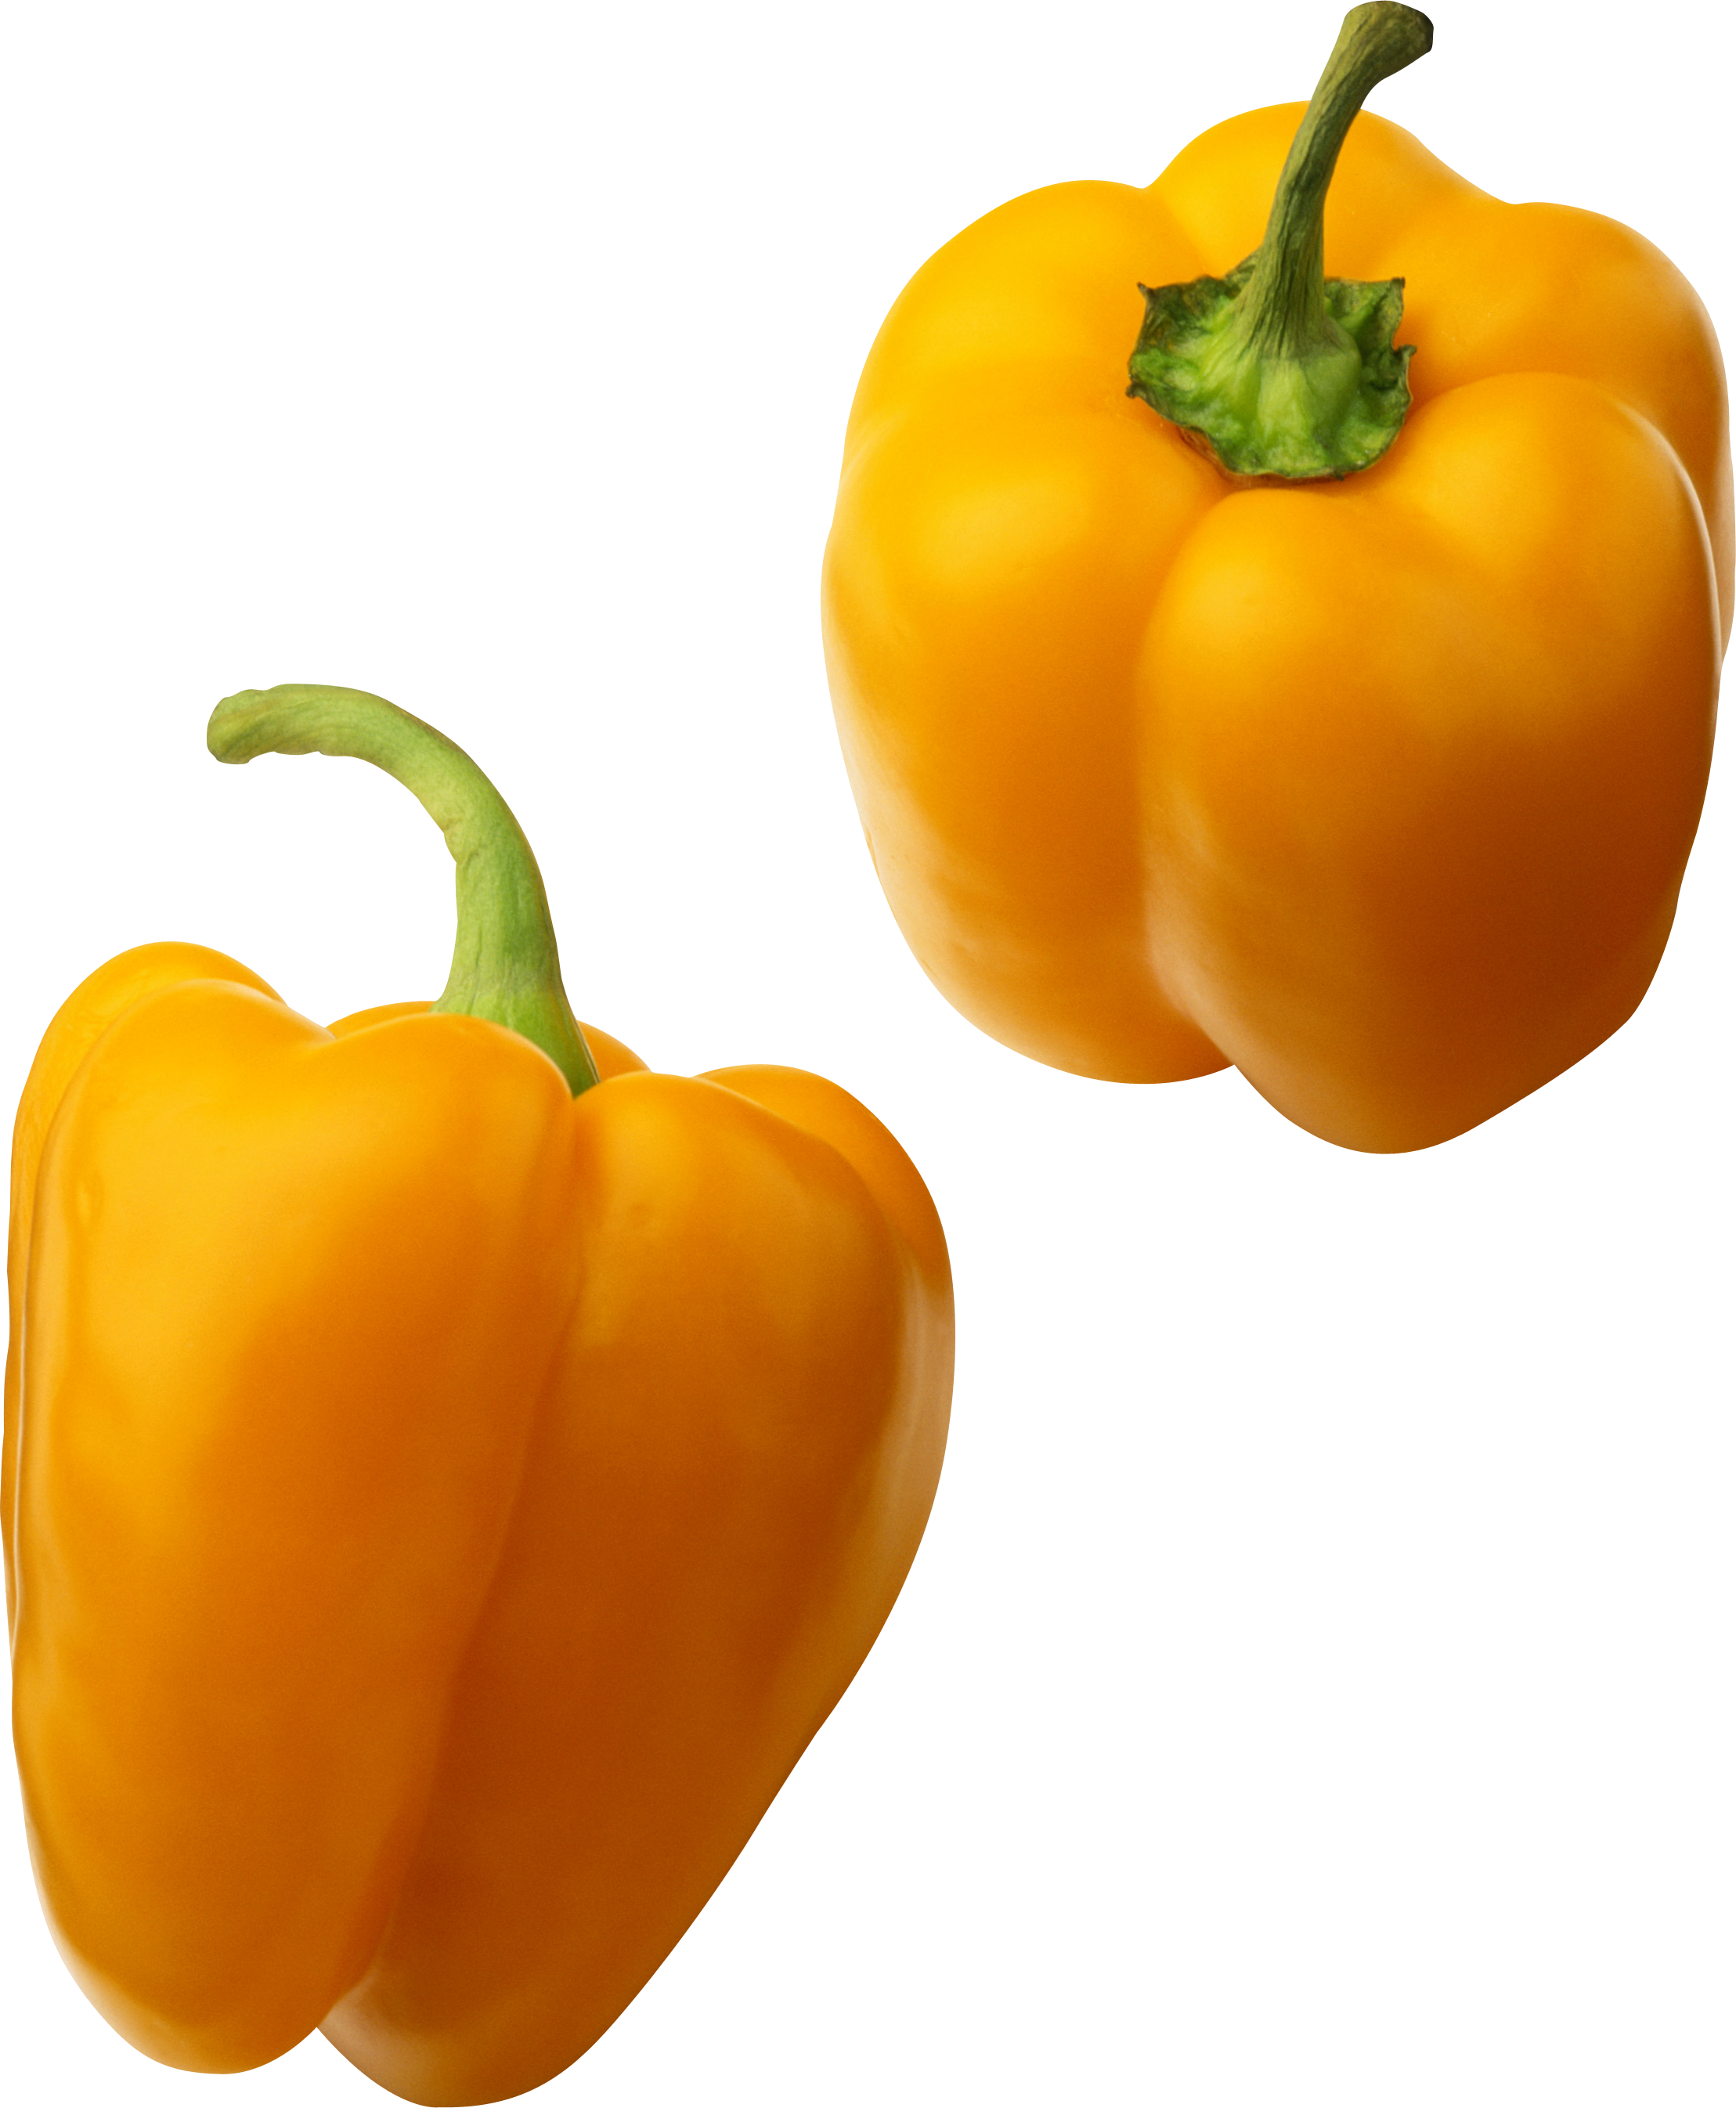 Png image purepng free. Peppers clipart yellow pepper